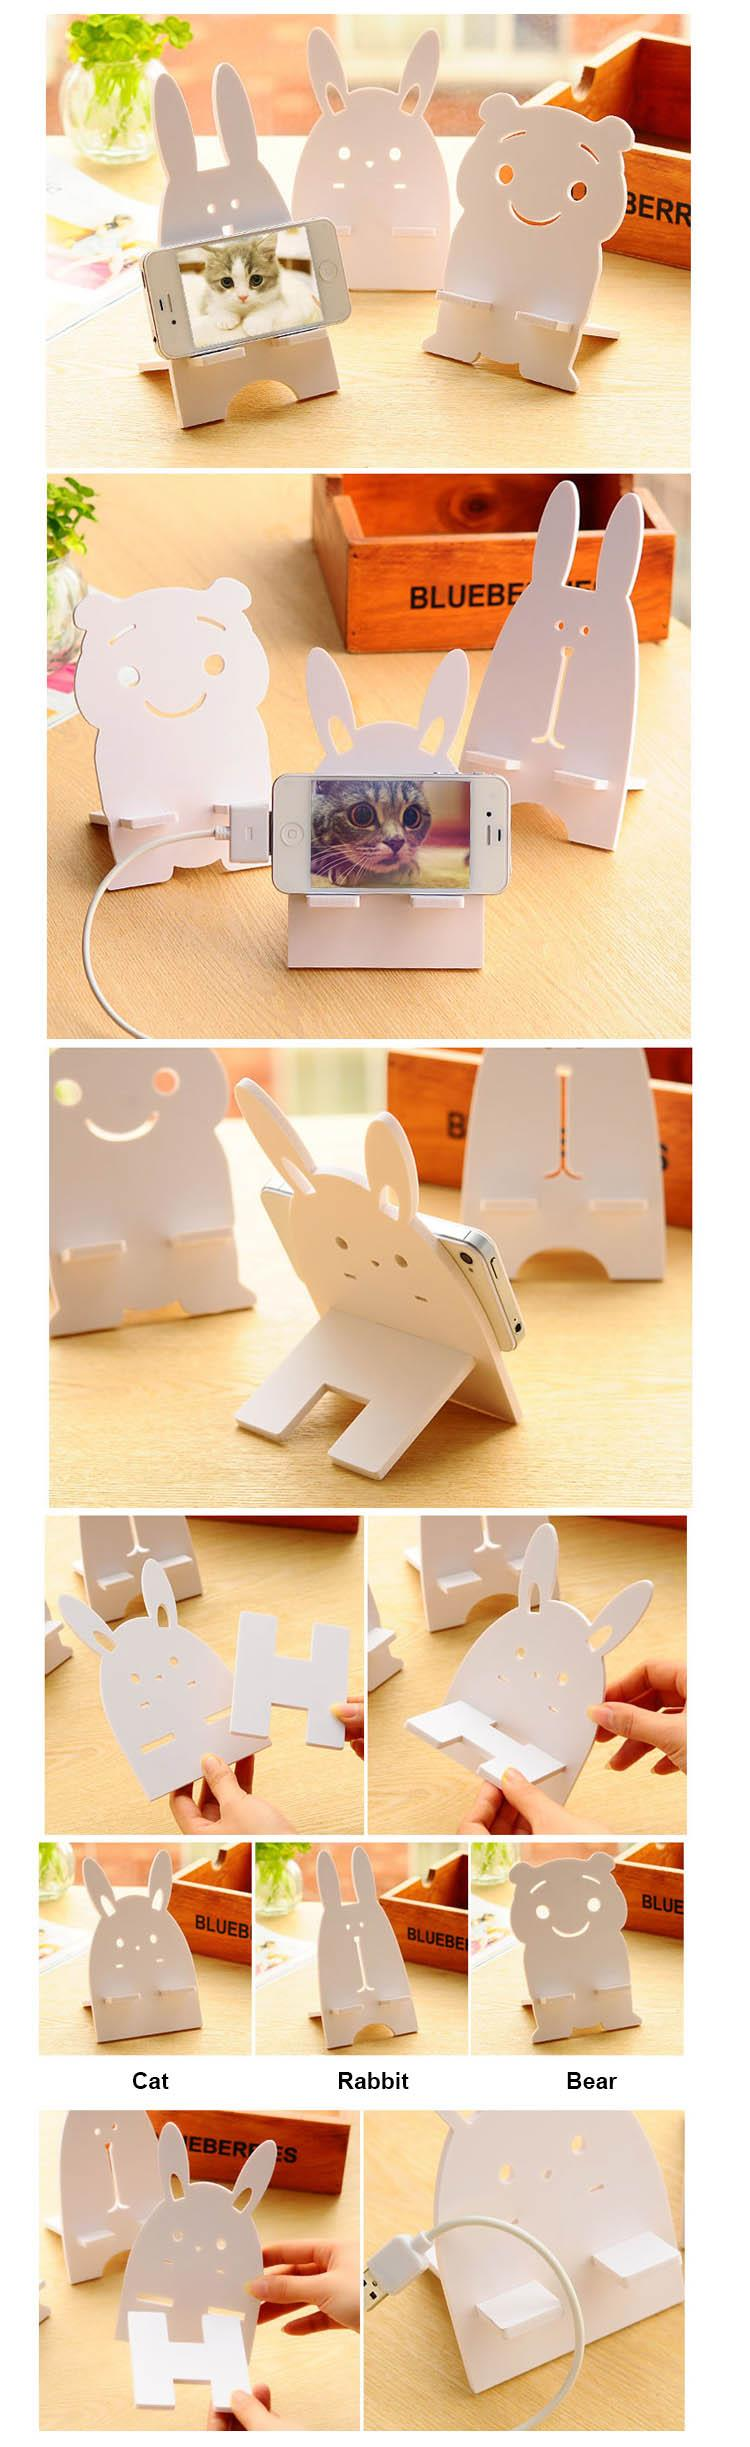 Wooden Cartoon Mobile Phone Holder